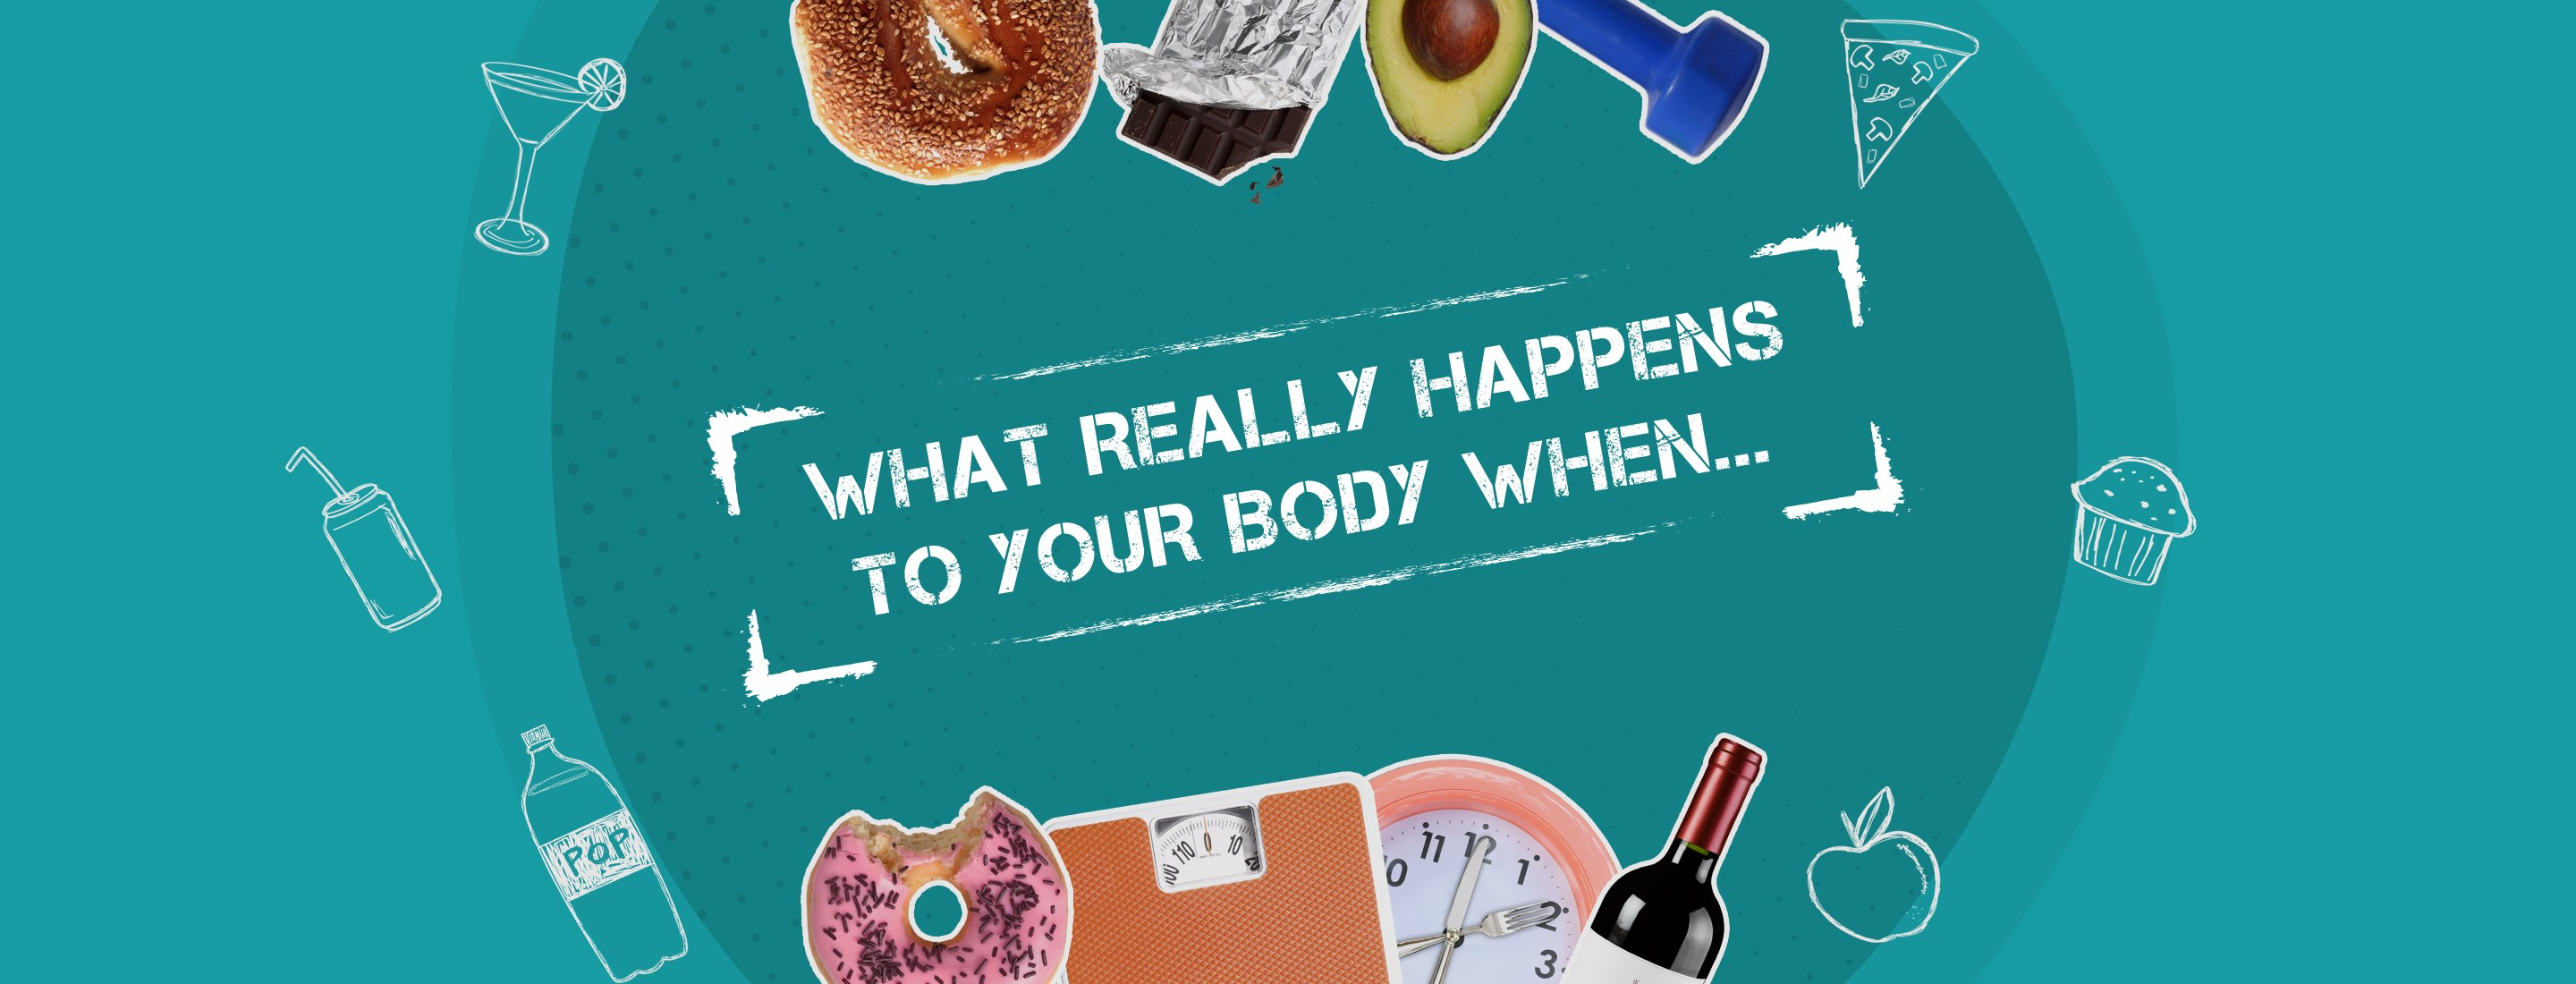 What Happens to Your Body When